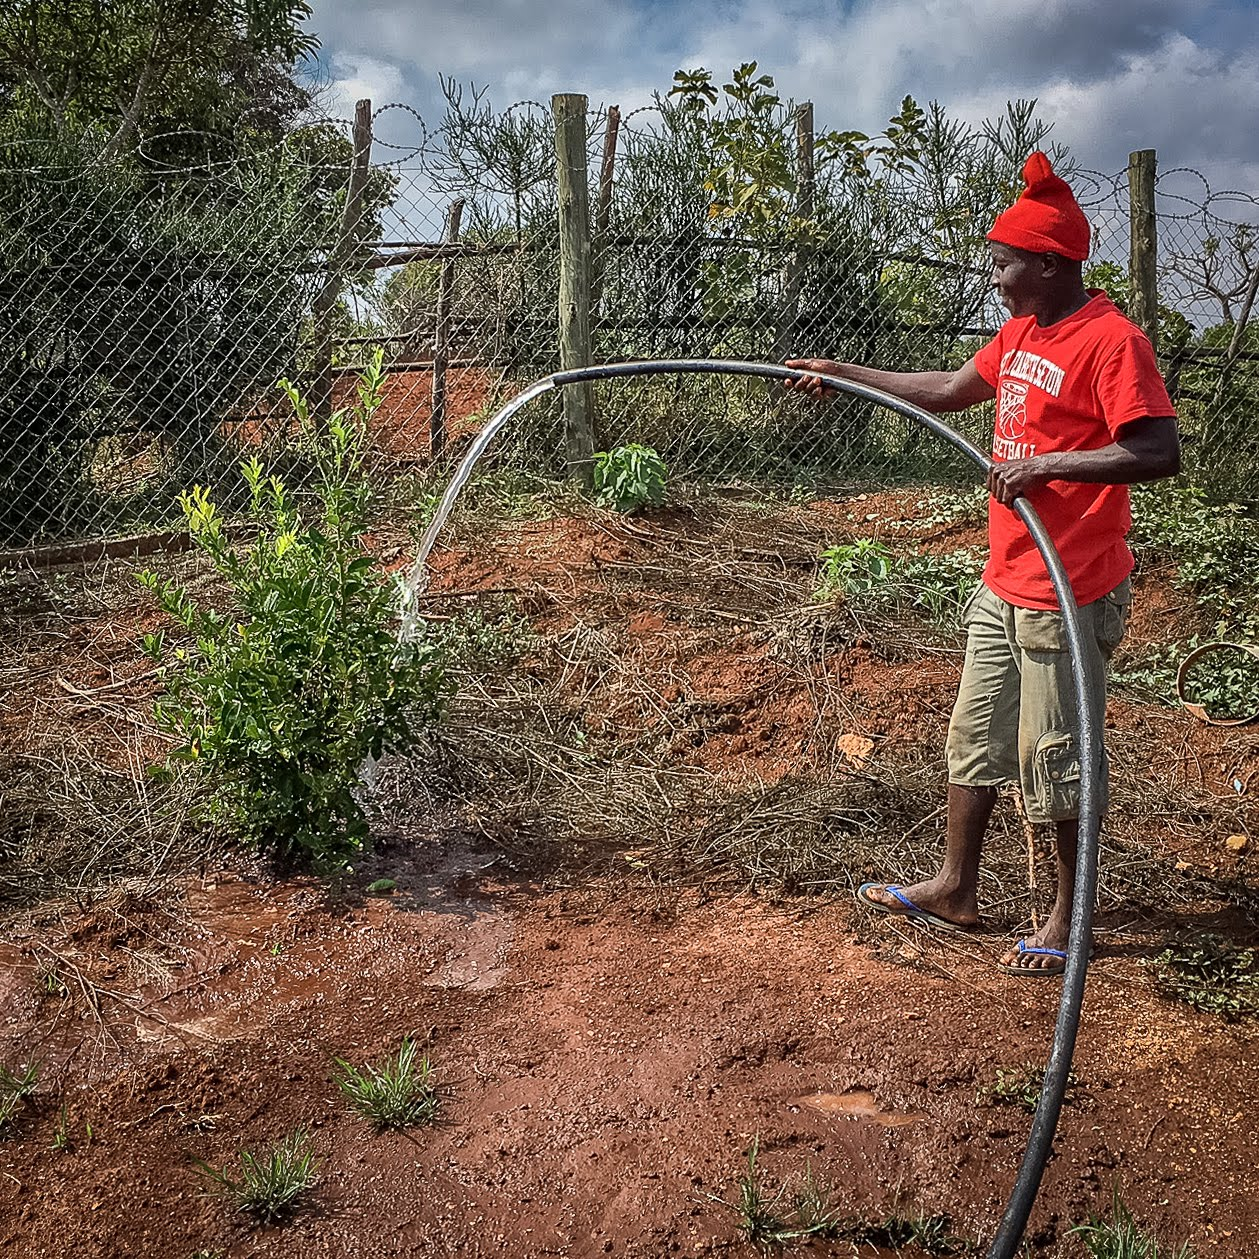 One of the youths waters the crops with a hose. Pipes are being laid to provide irrigation to the fields. Water for irrigation will be stored in a large tank that is under construction.